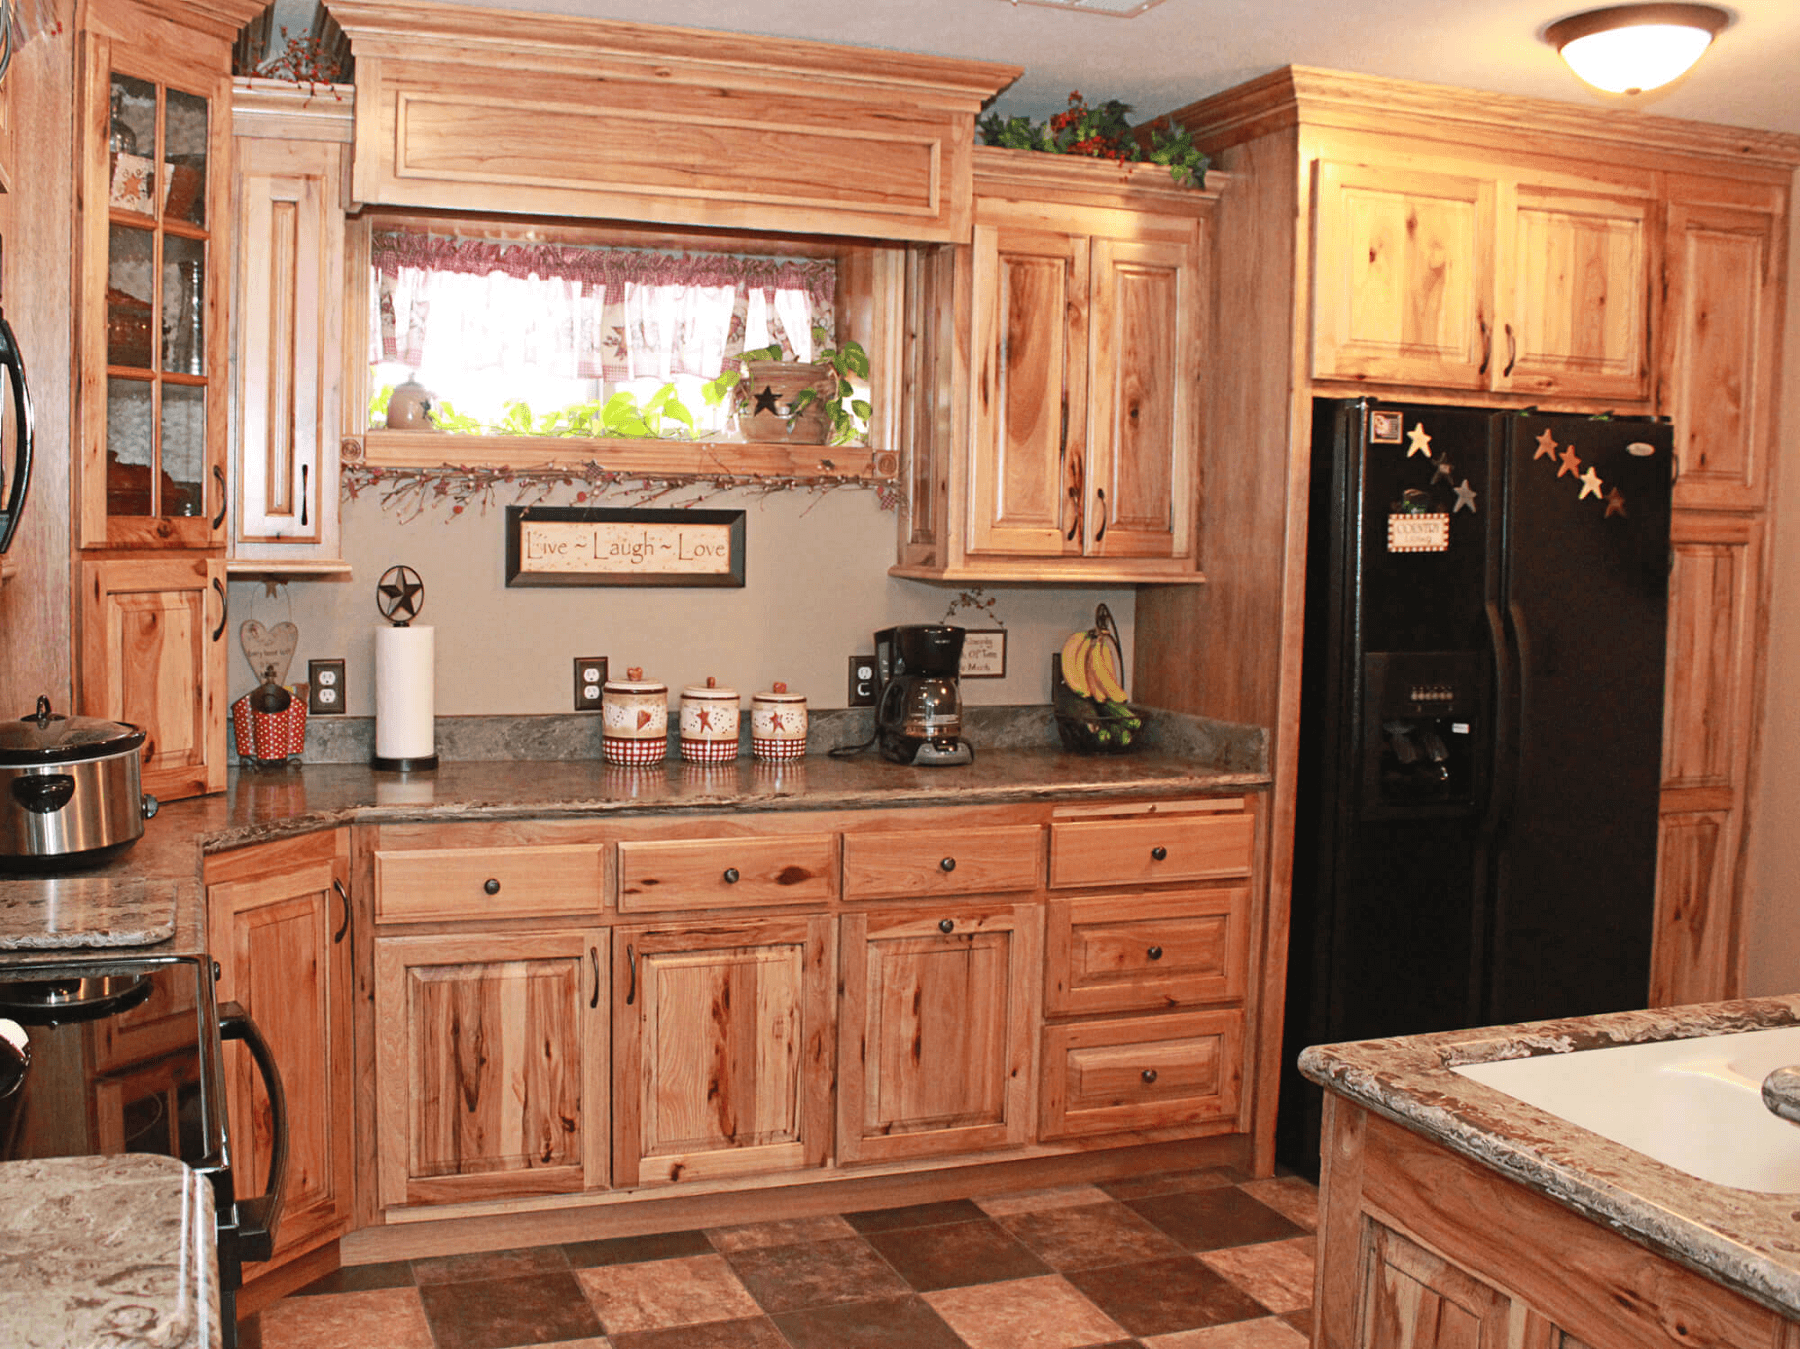 Hickory kitchen cabinets rustic